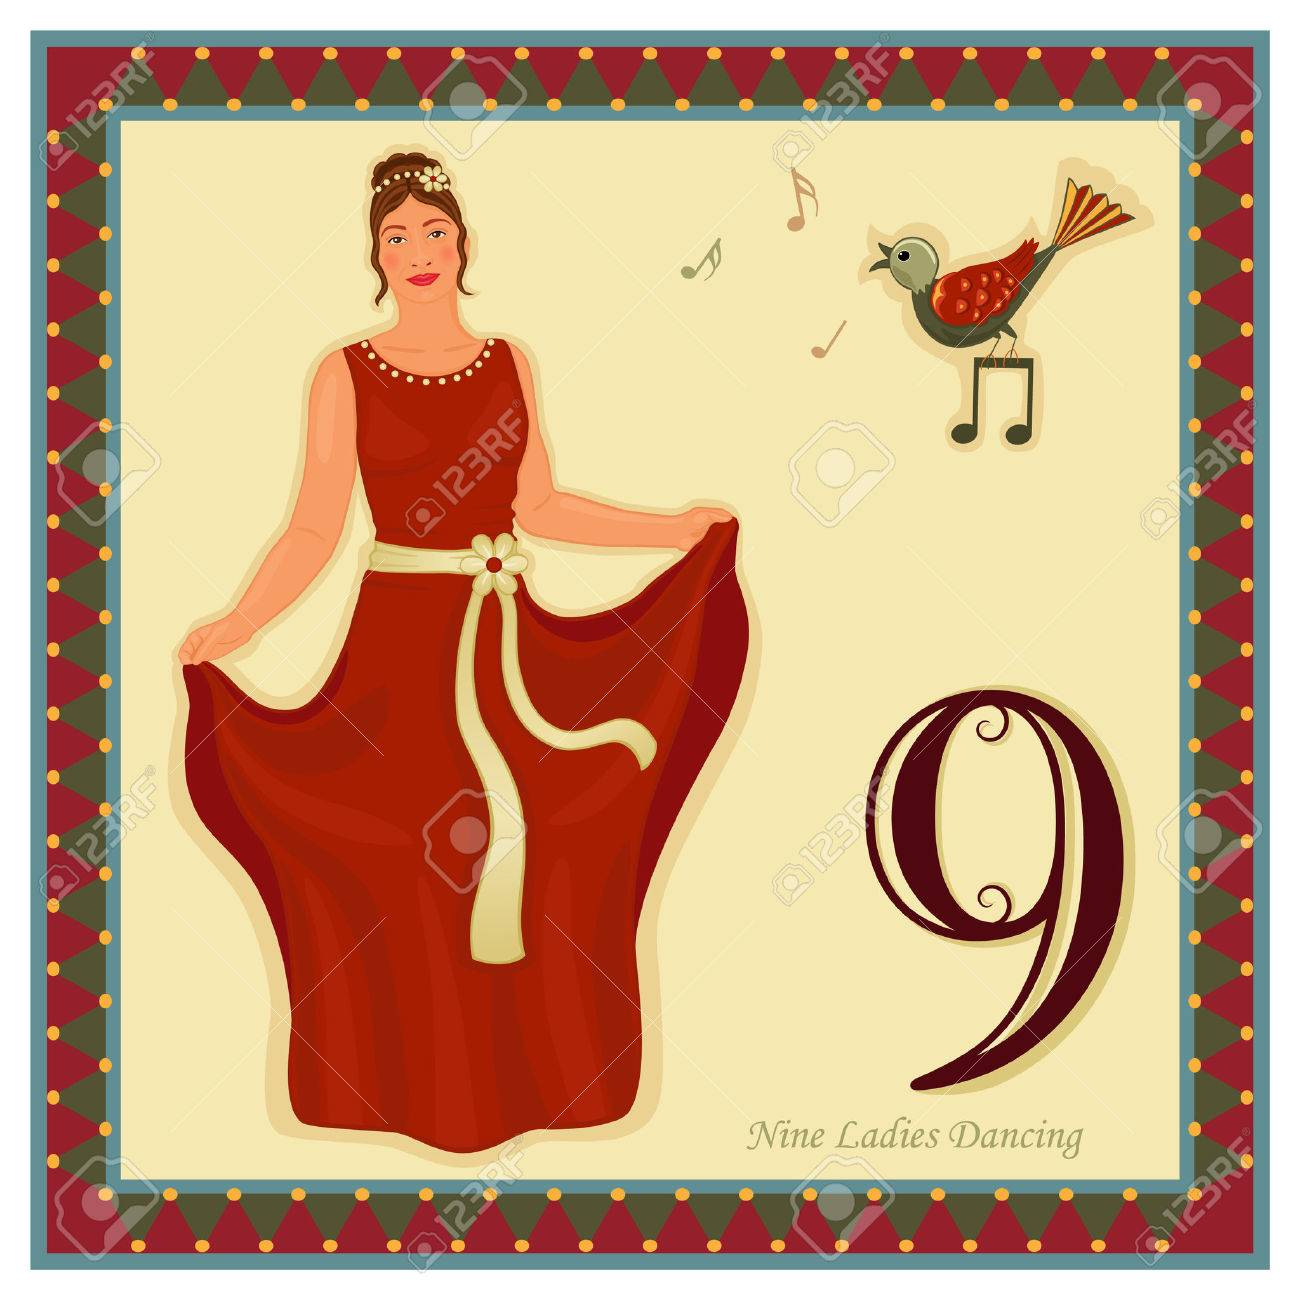 The 12 Days of Christmas - 9-th Day - Nine ladies dancing Stock Vector - 8335956